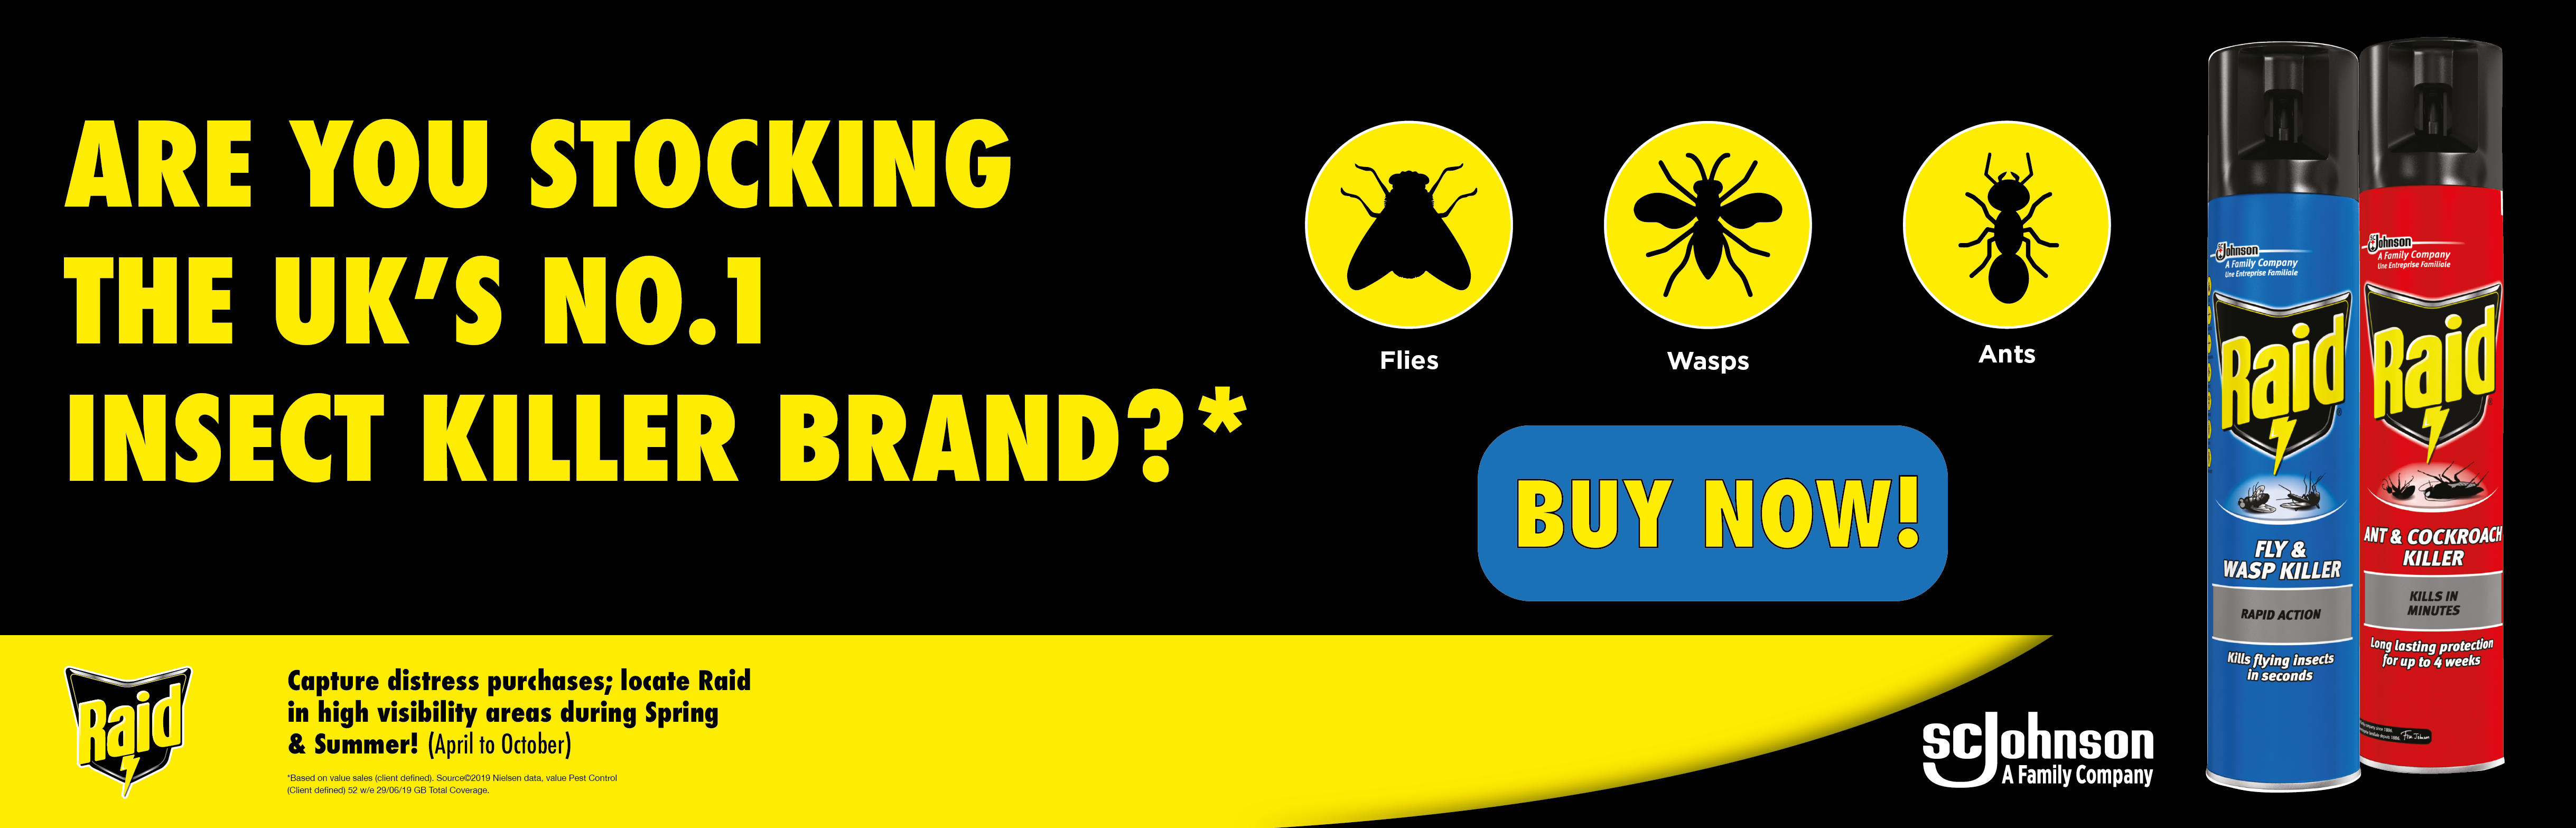 Buy Now! Raid- The UK's no.1 Insect Killer